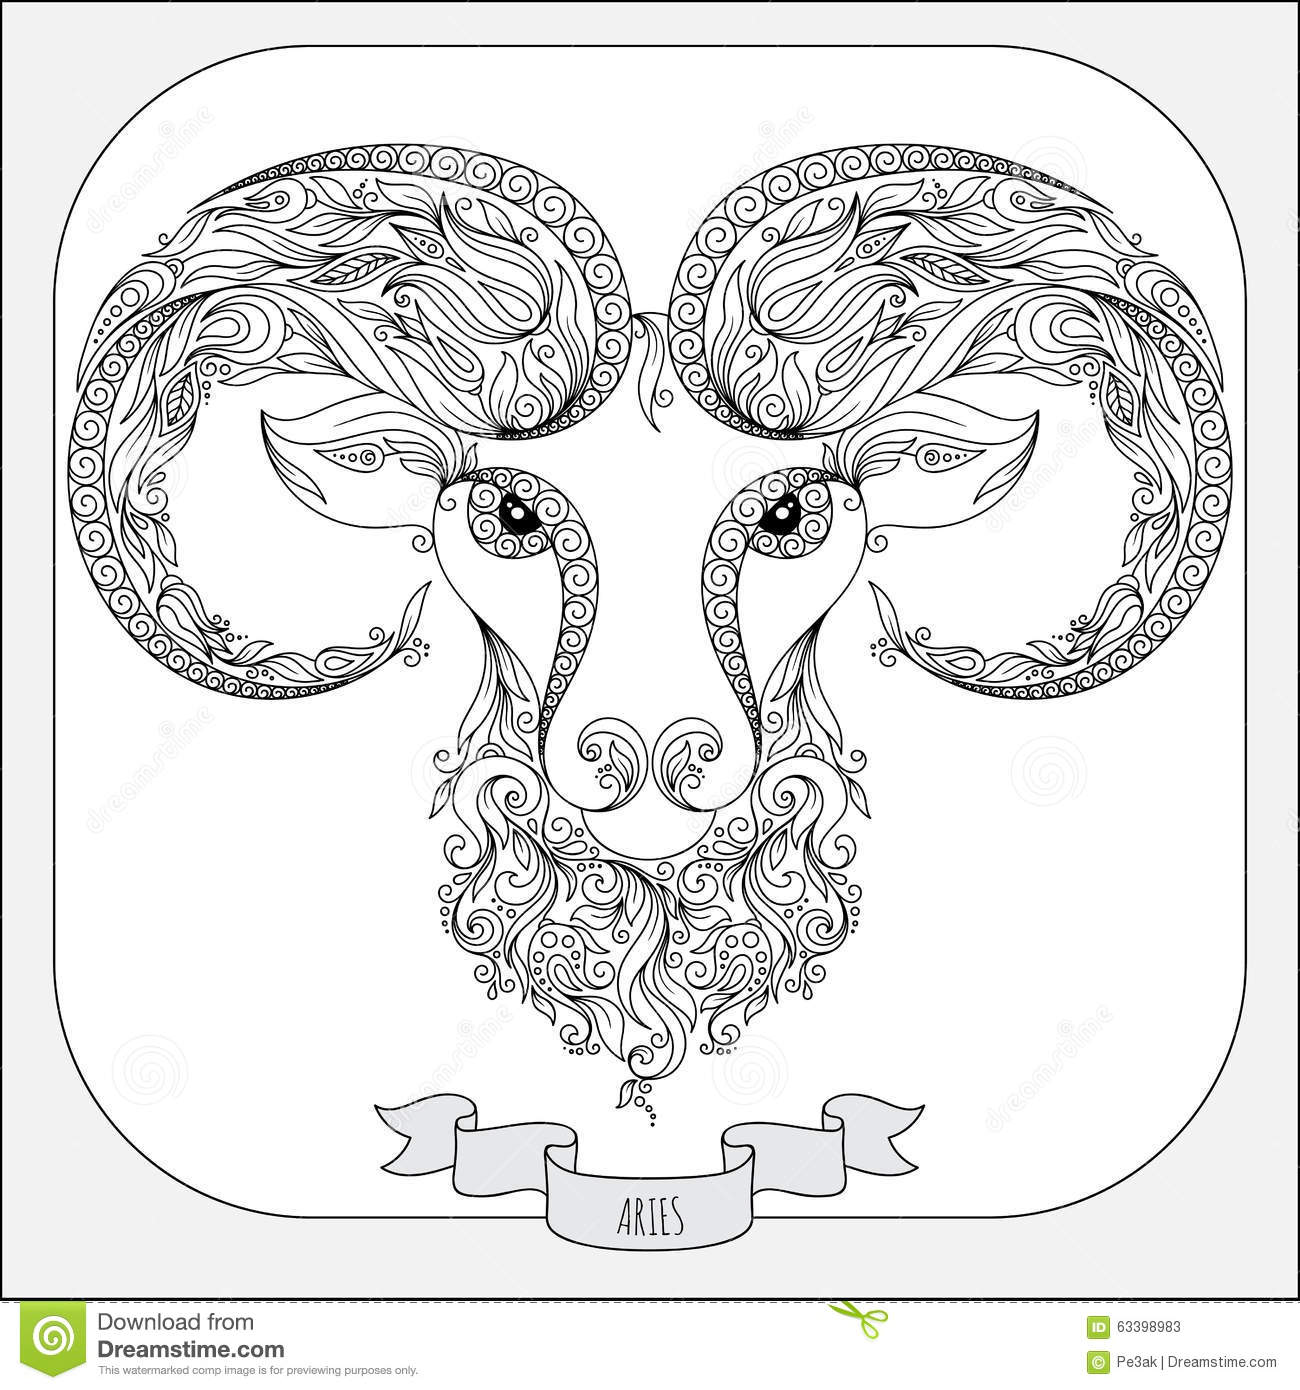 Arcies Coloring Pages